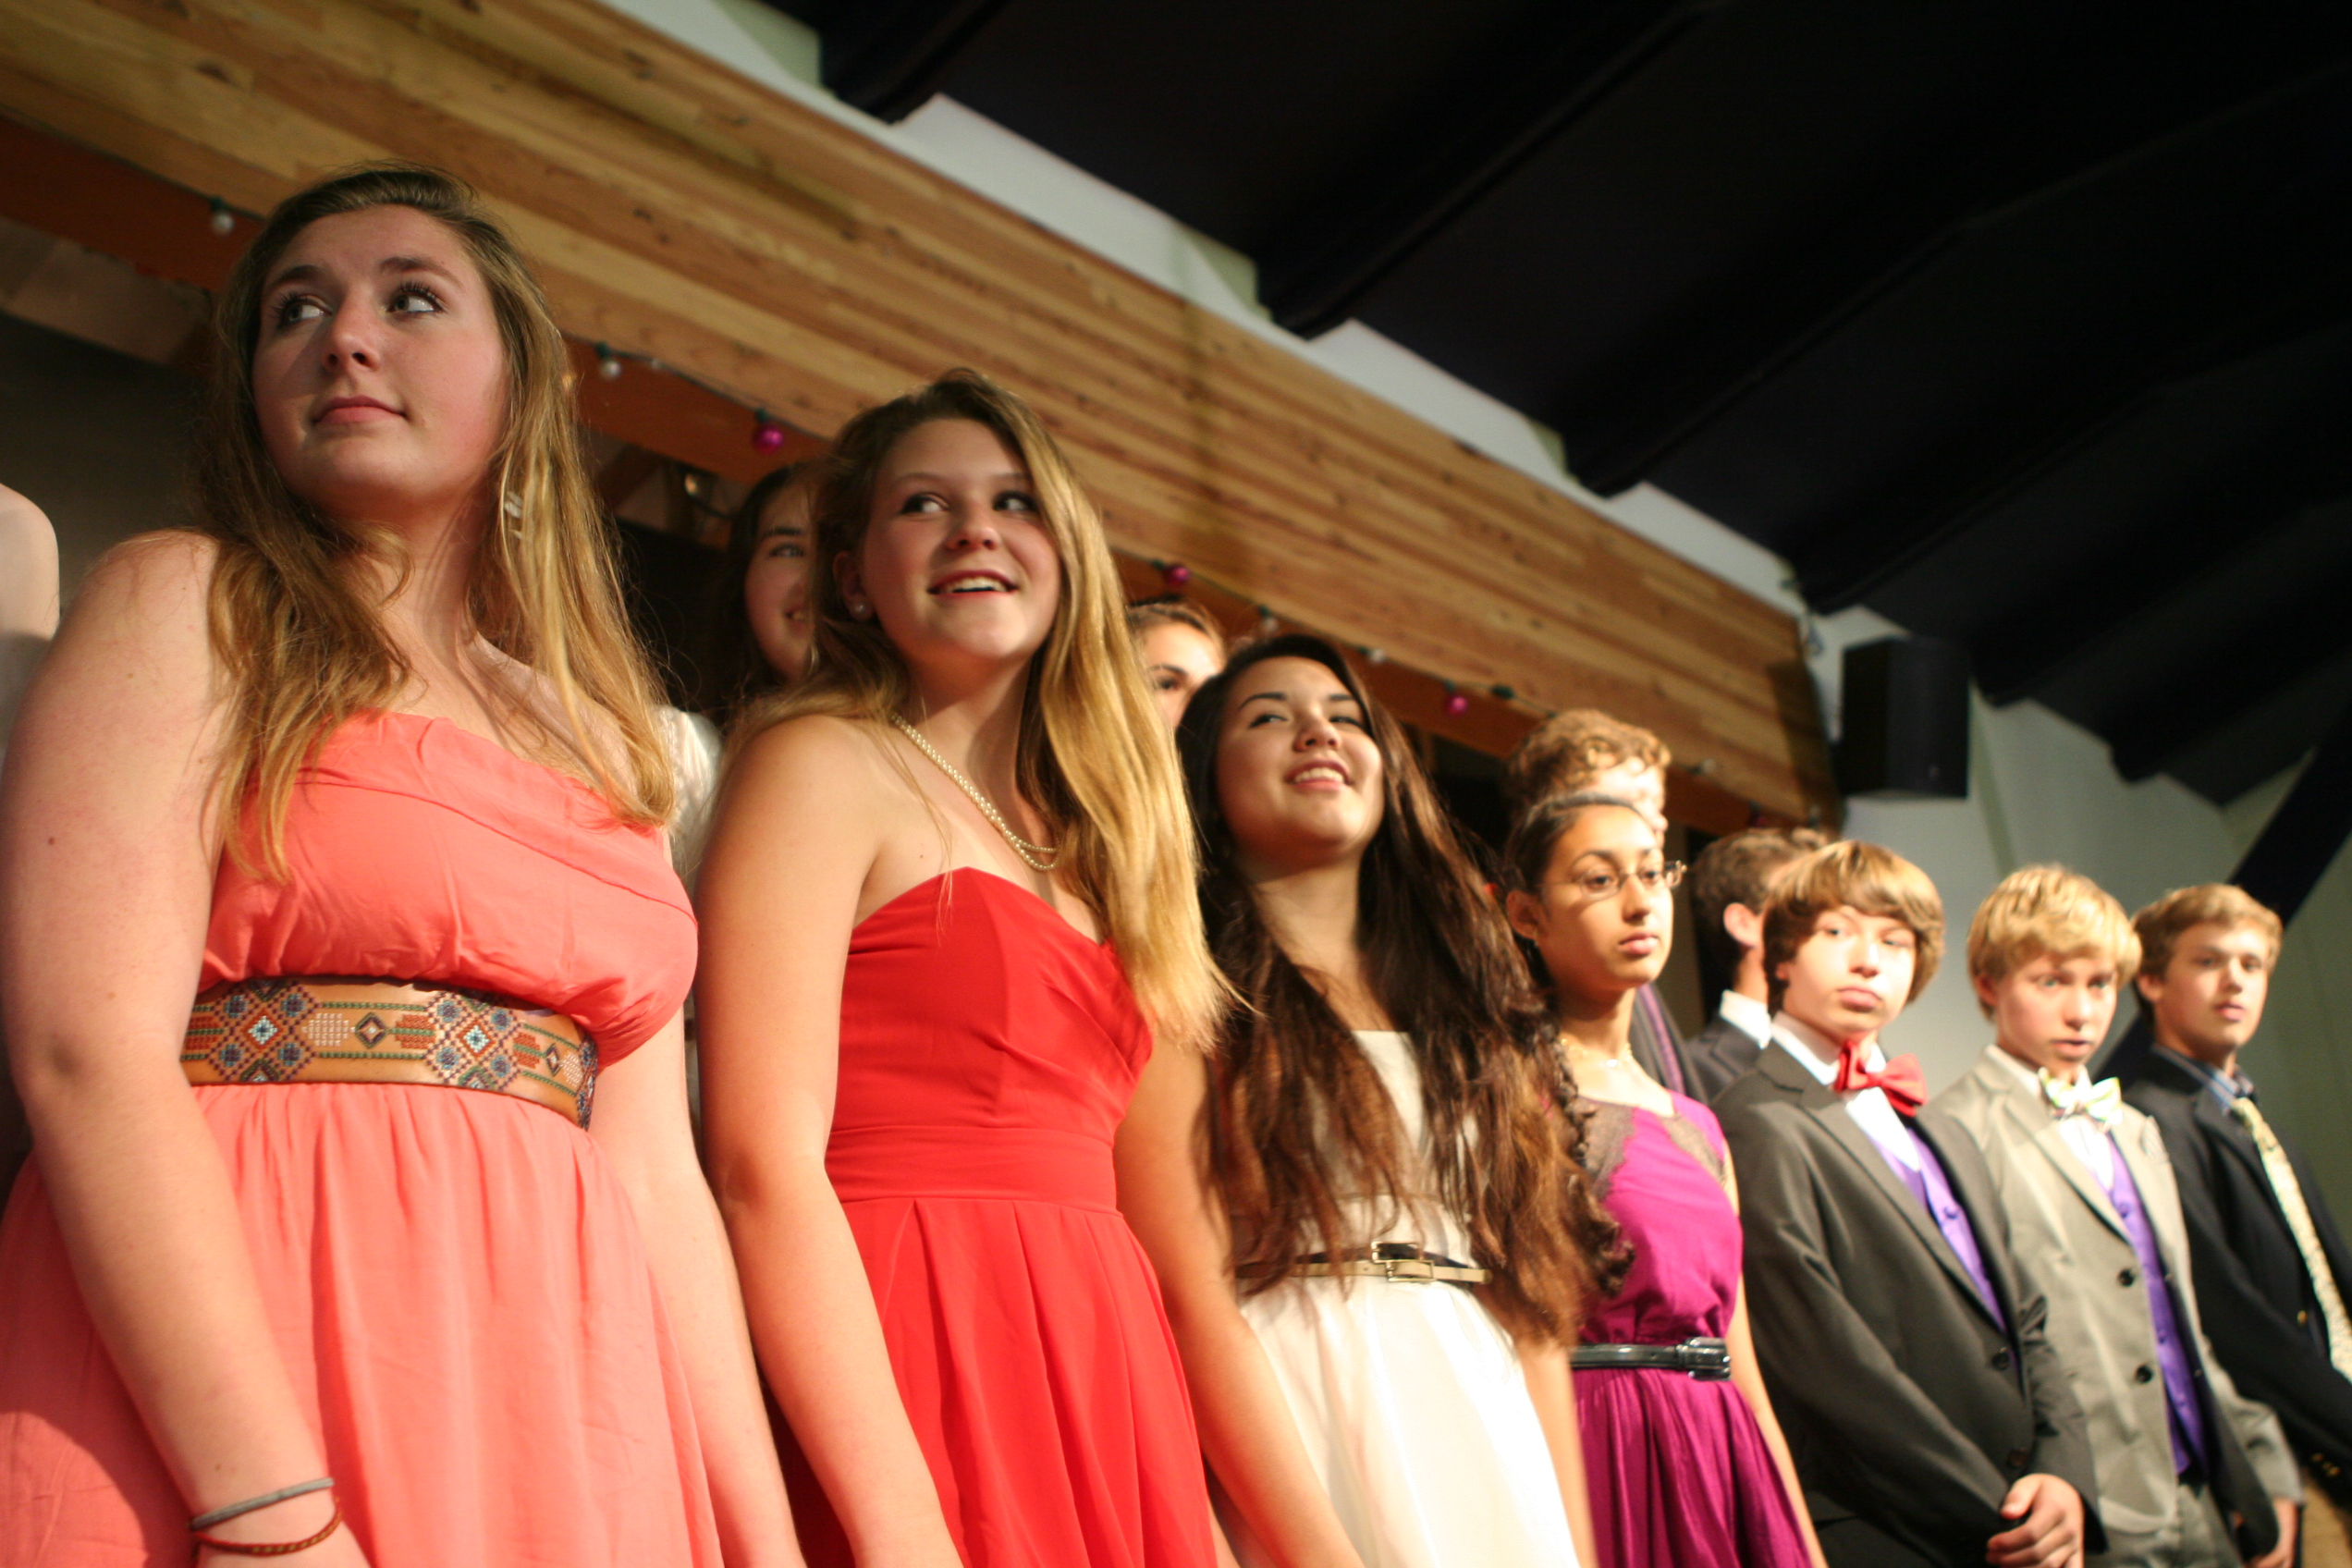 Katy, Ellinore, Allegra, Ashna, Russeland the 8th grade class of 2013 singing